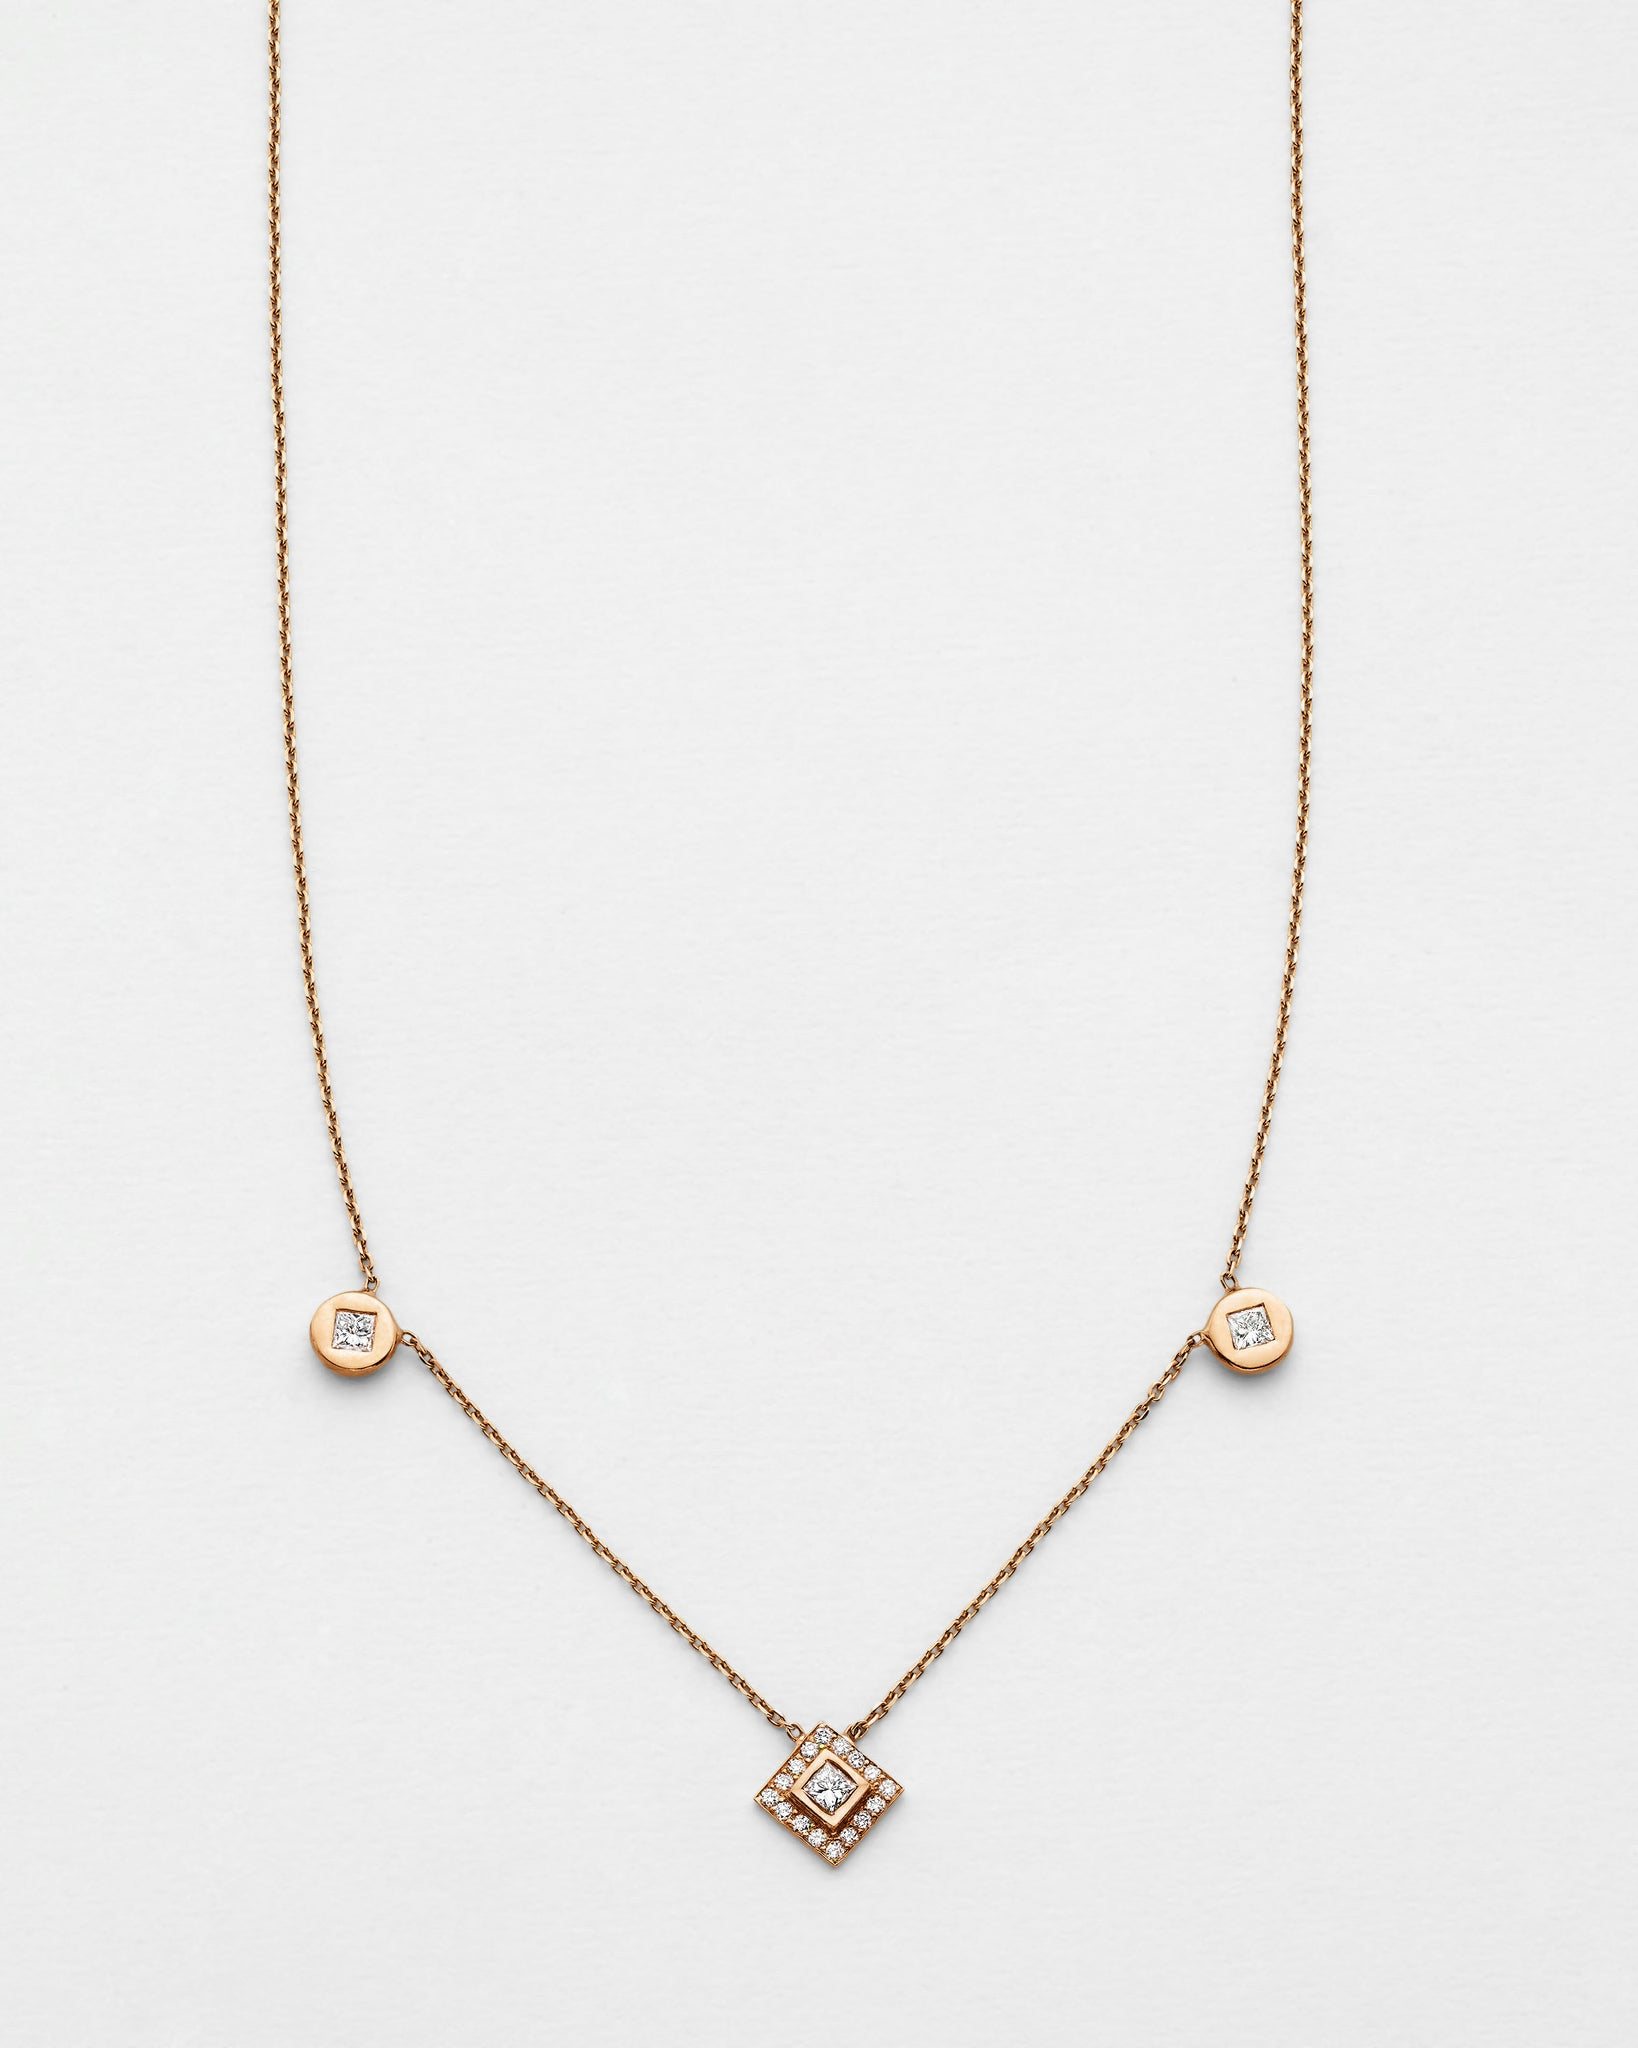 Chain Reaction Medallion and Princess Pave Necklace